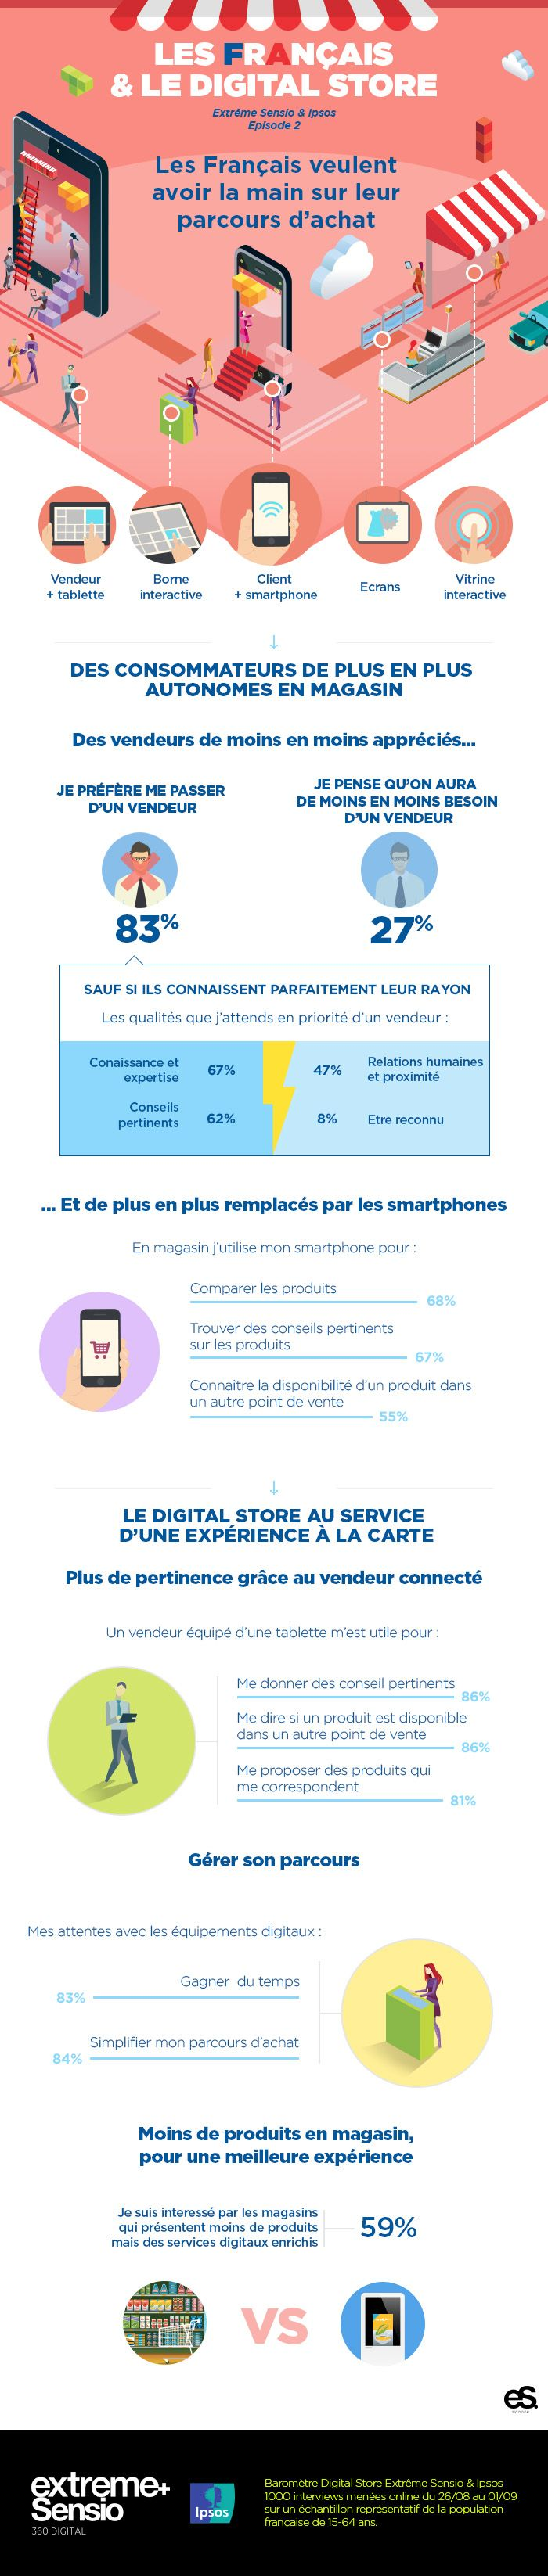 588 best infographic images on pinterest info graphics inbound infographie les franais et le digital store par extrme sensio pisode 2 malvernweather Gallery